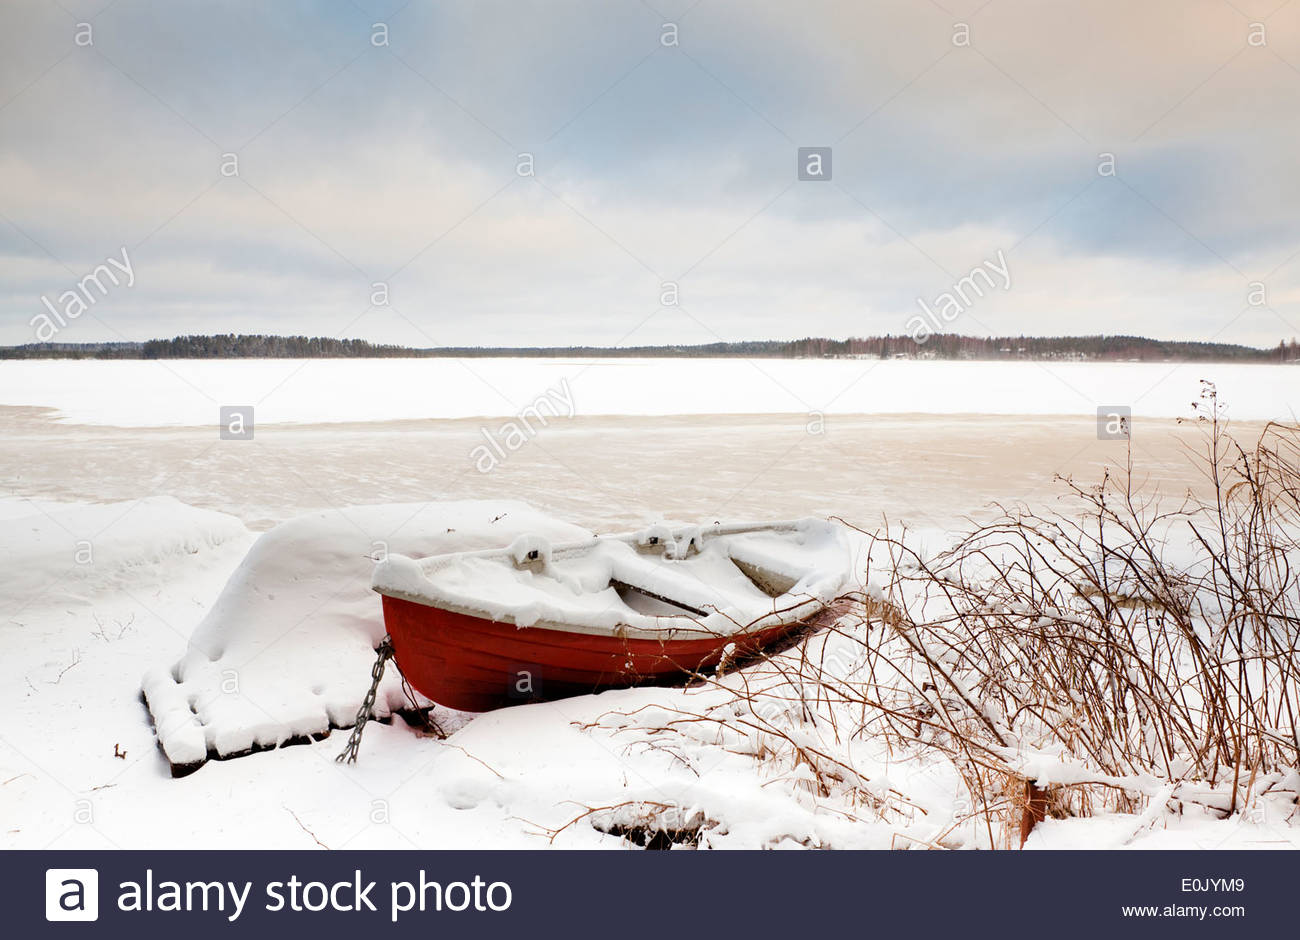 Boat on shore in winter - Stock Image